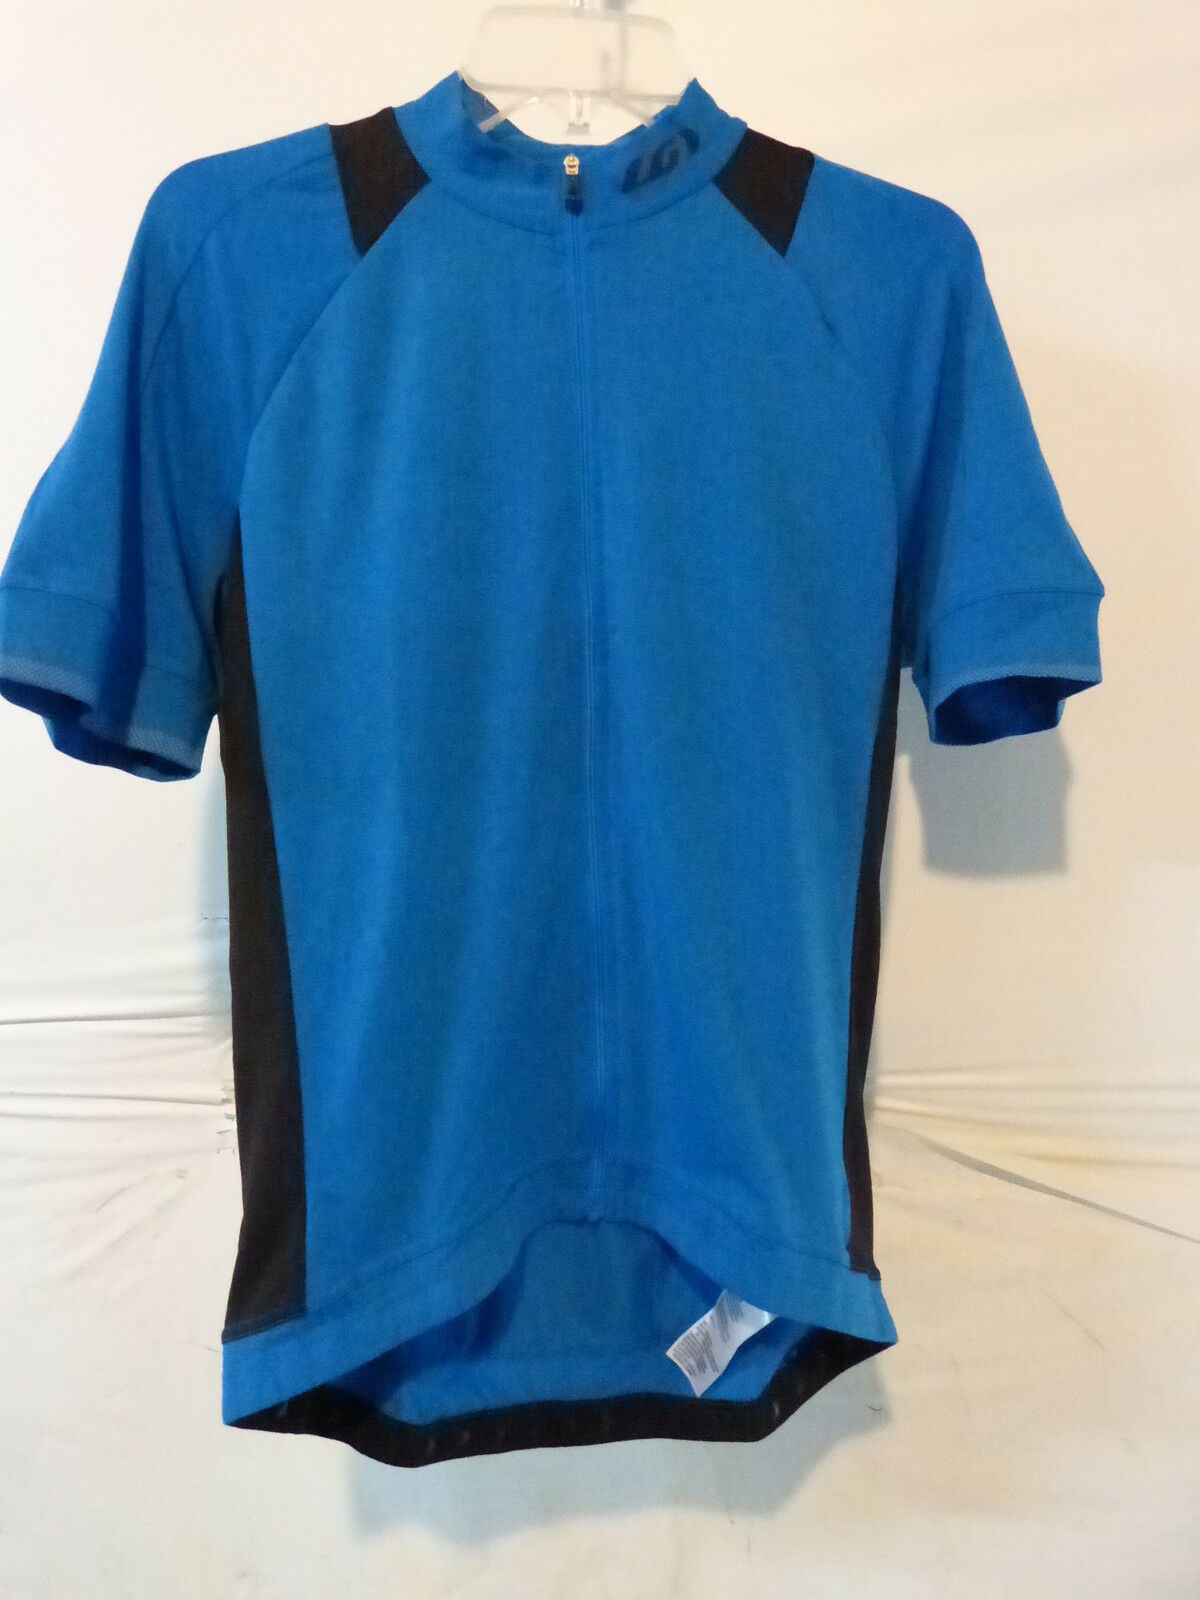 Louis Garneau Lemmon 2 Jersey Men's Medium Curacao bluee Retail  59.99